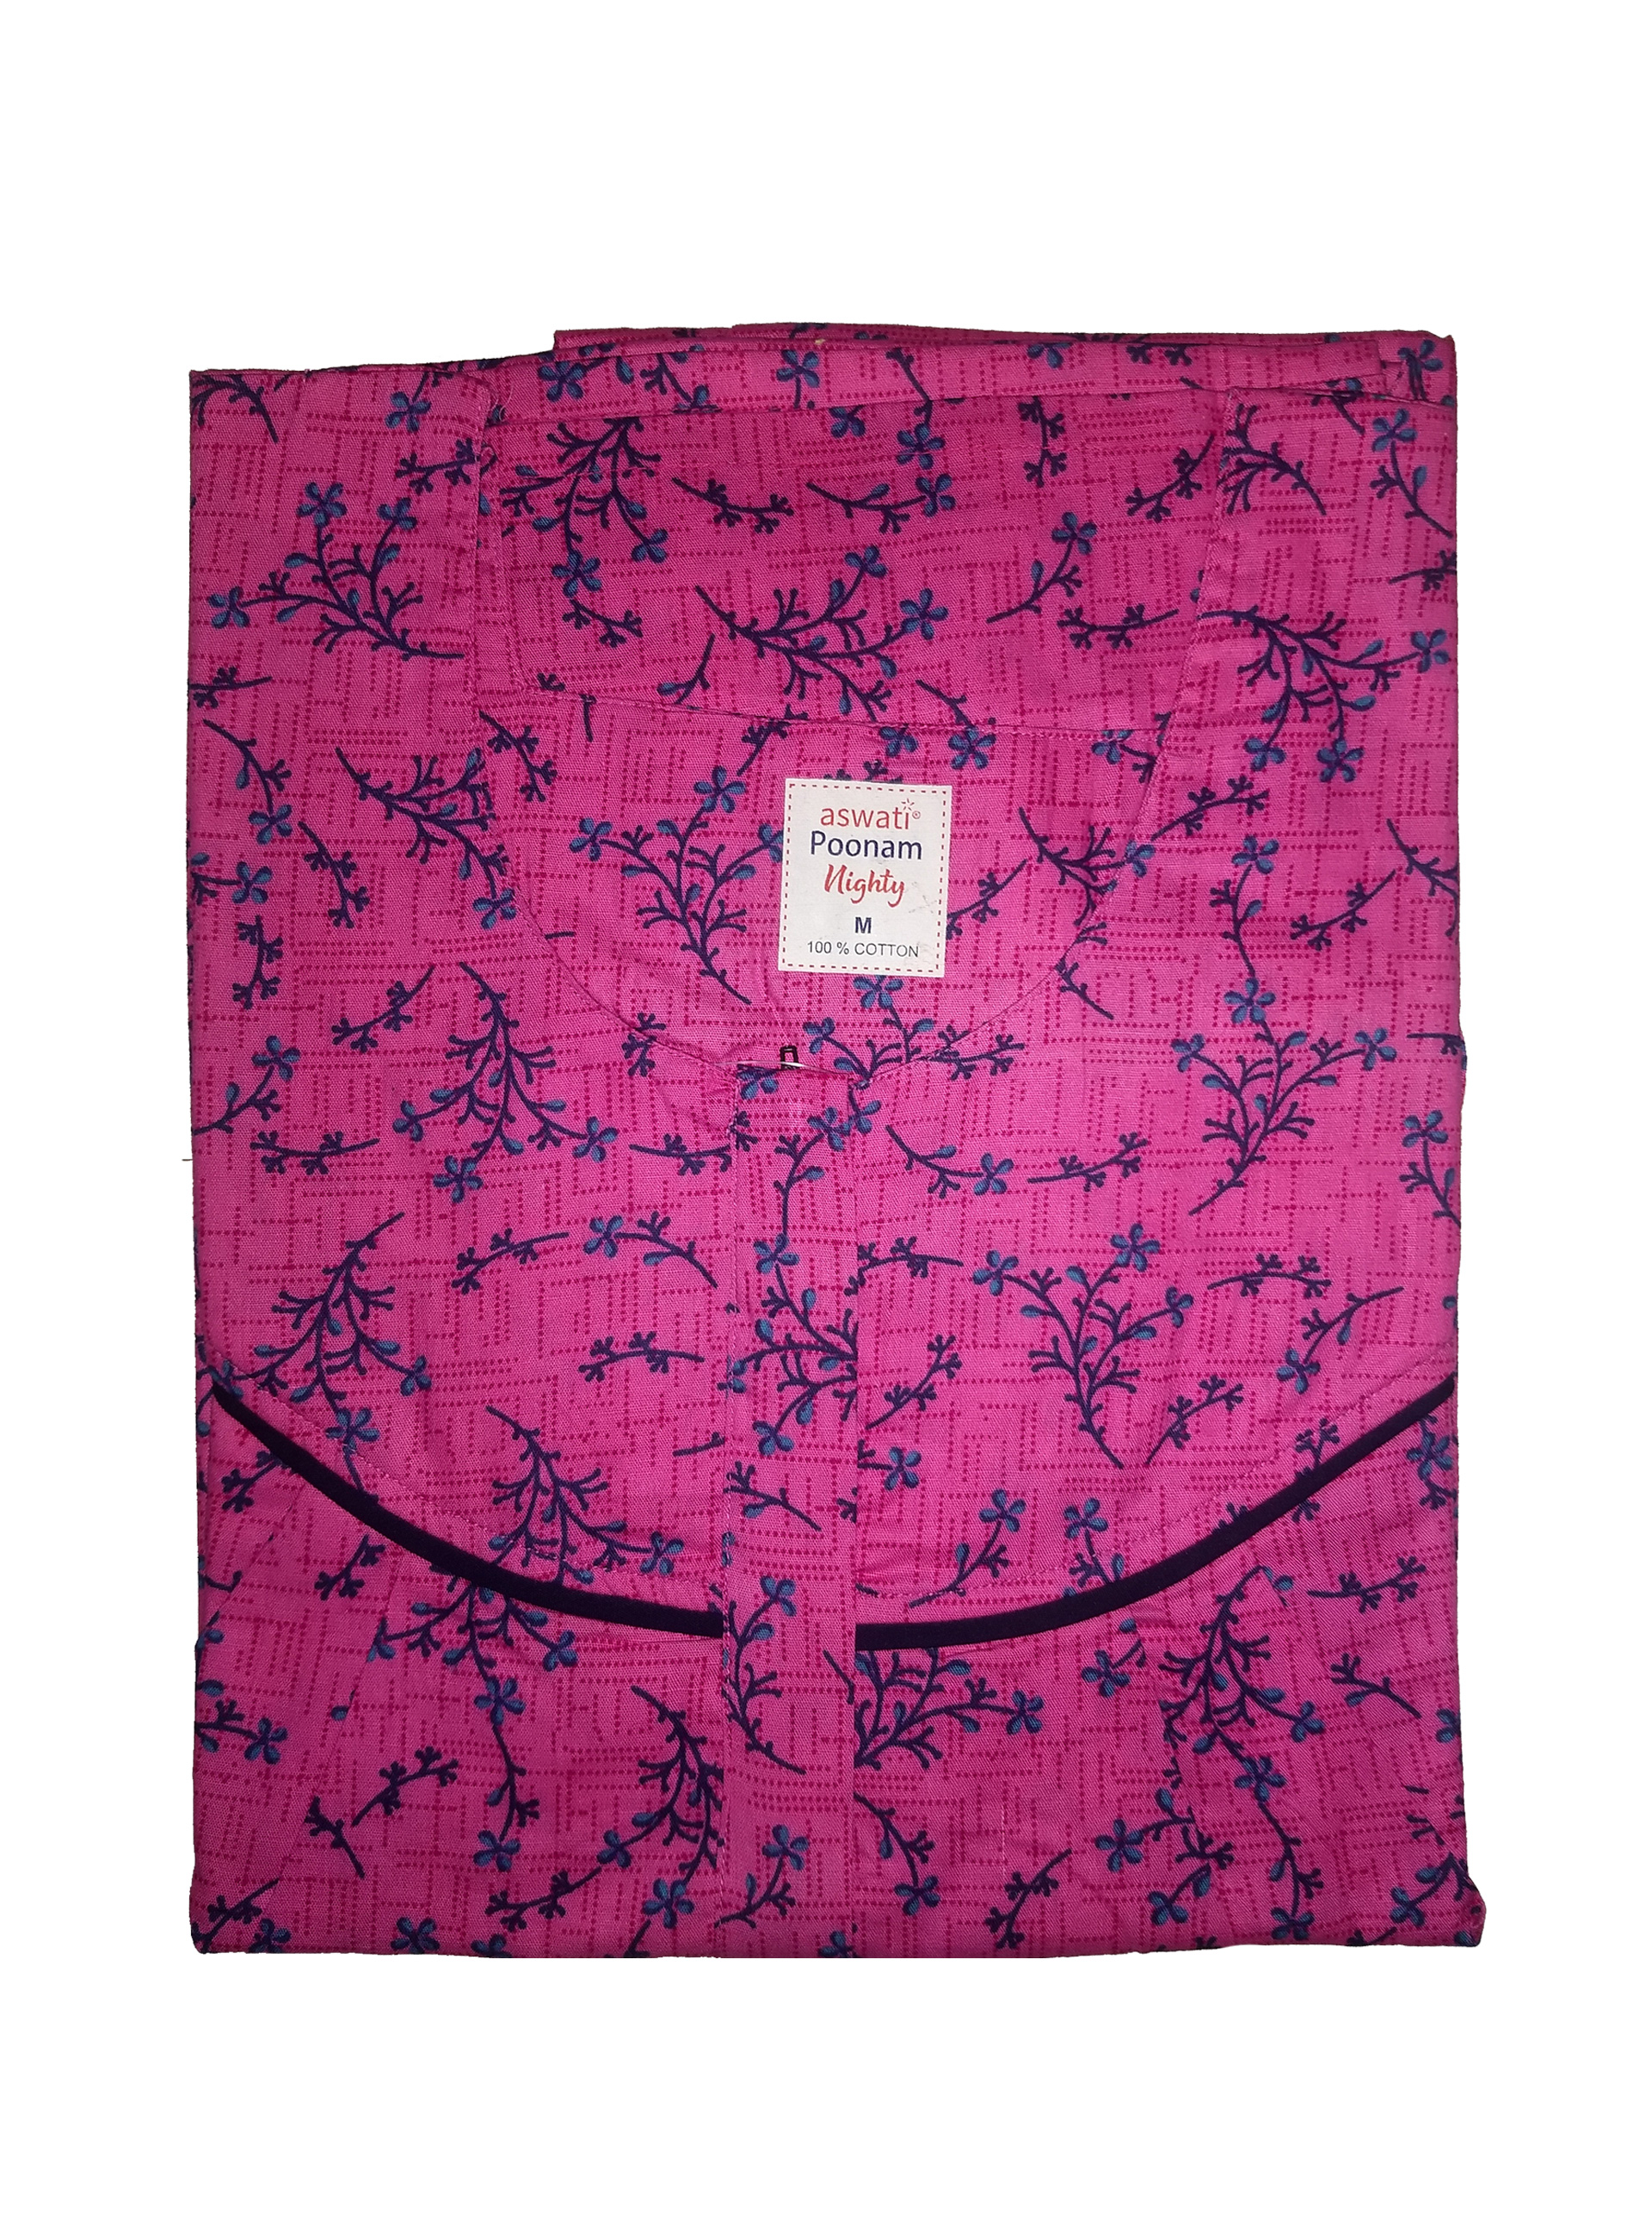 Poonam Nighty (XXL) - Pink With Floral Prints